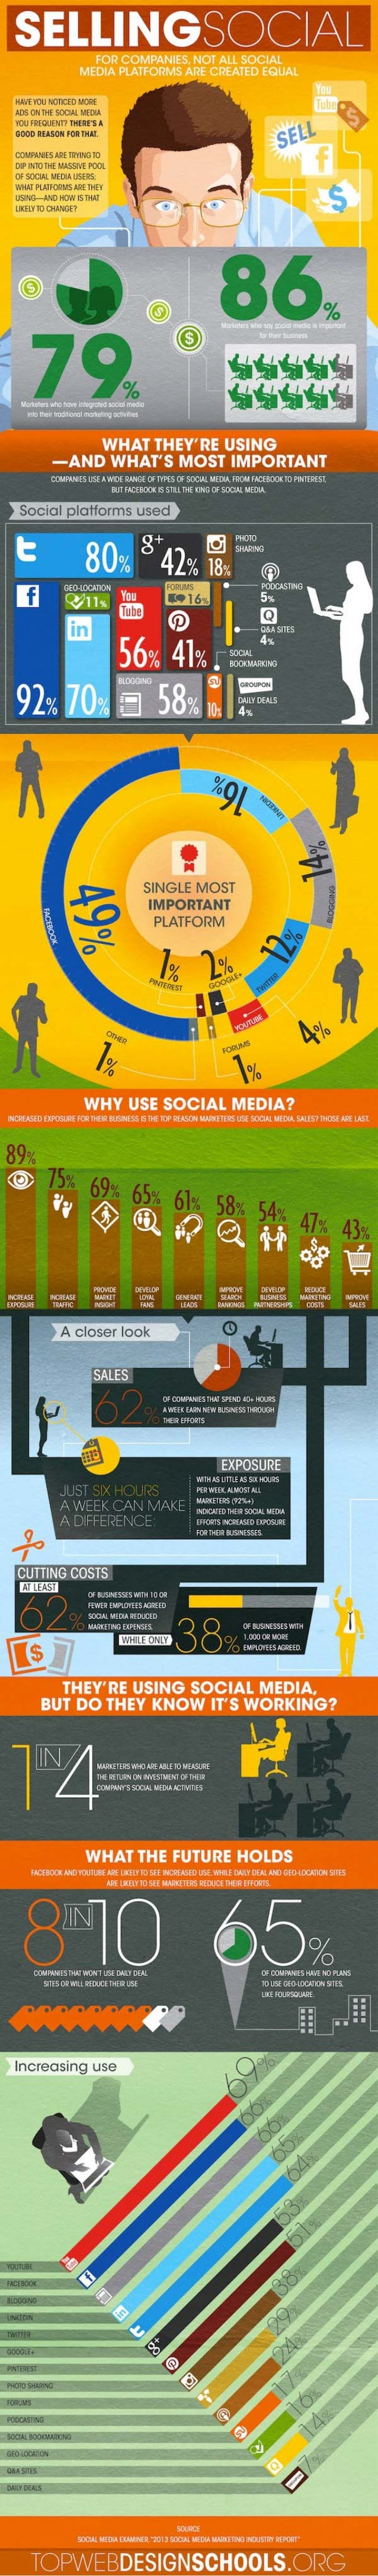 Why Marketers are Using Social Media